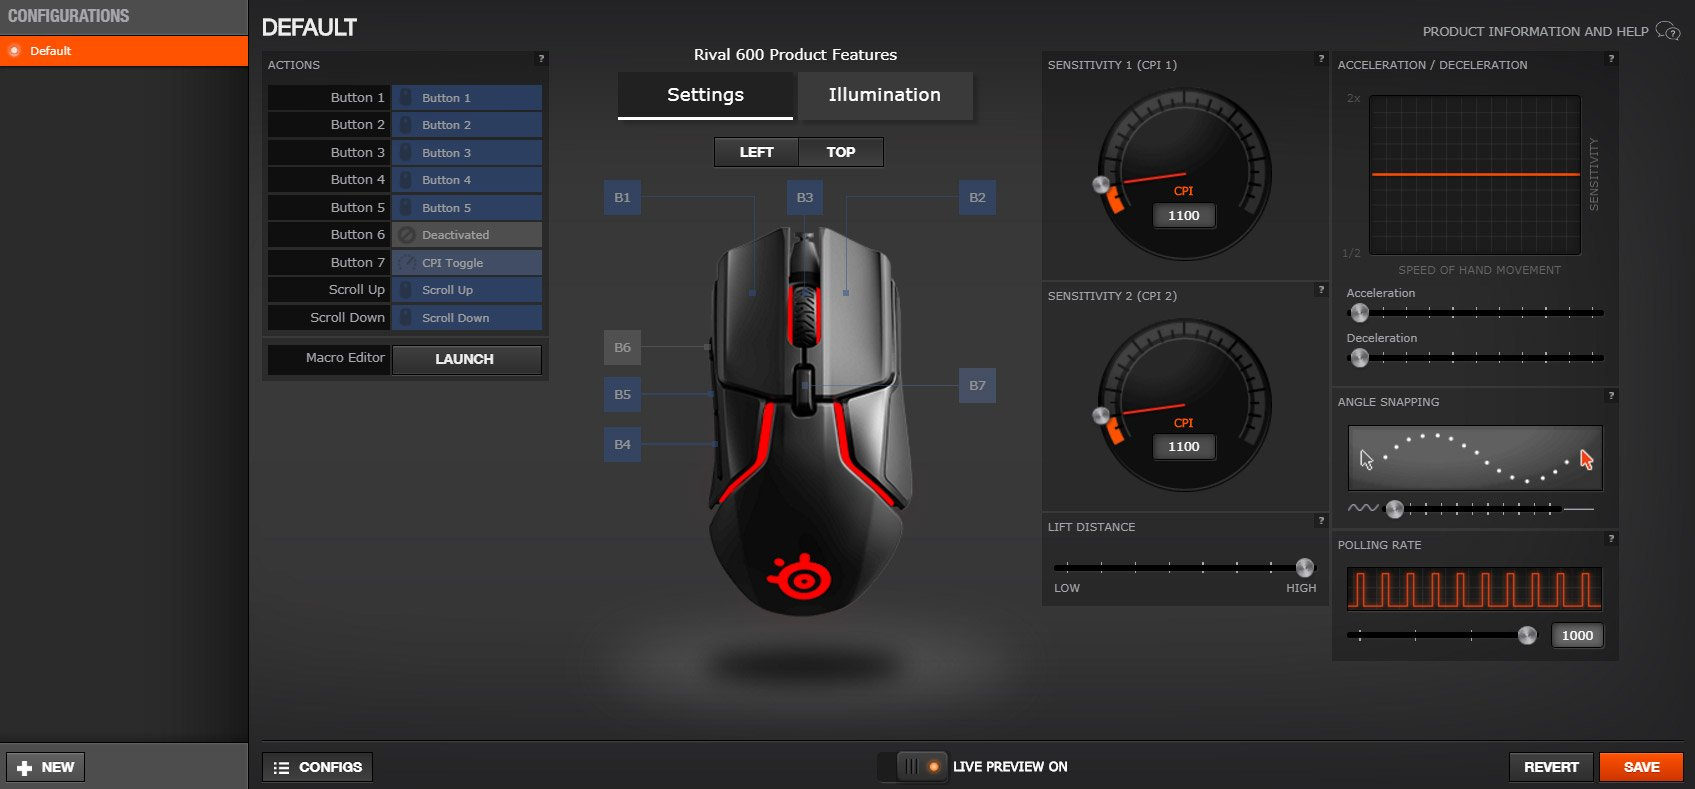 SteelSeries Rival 600 Gaming Mouse Review - ProSettings com